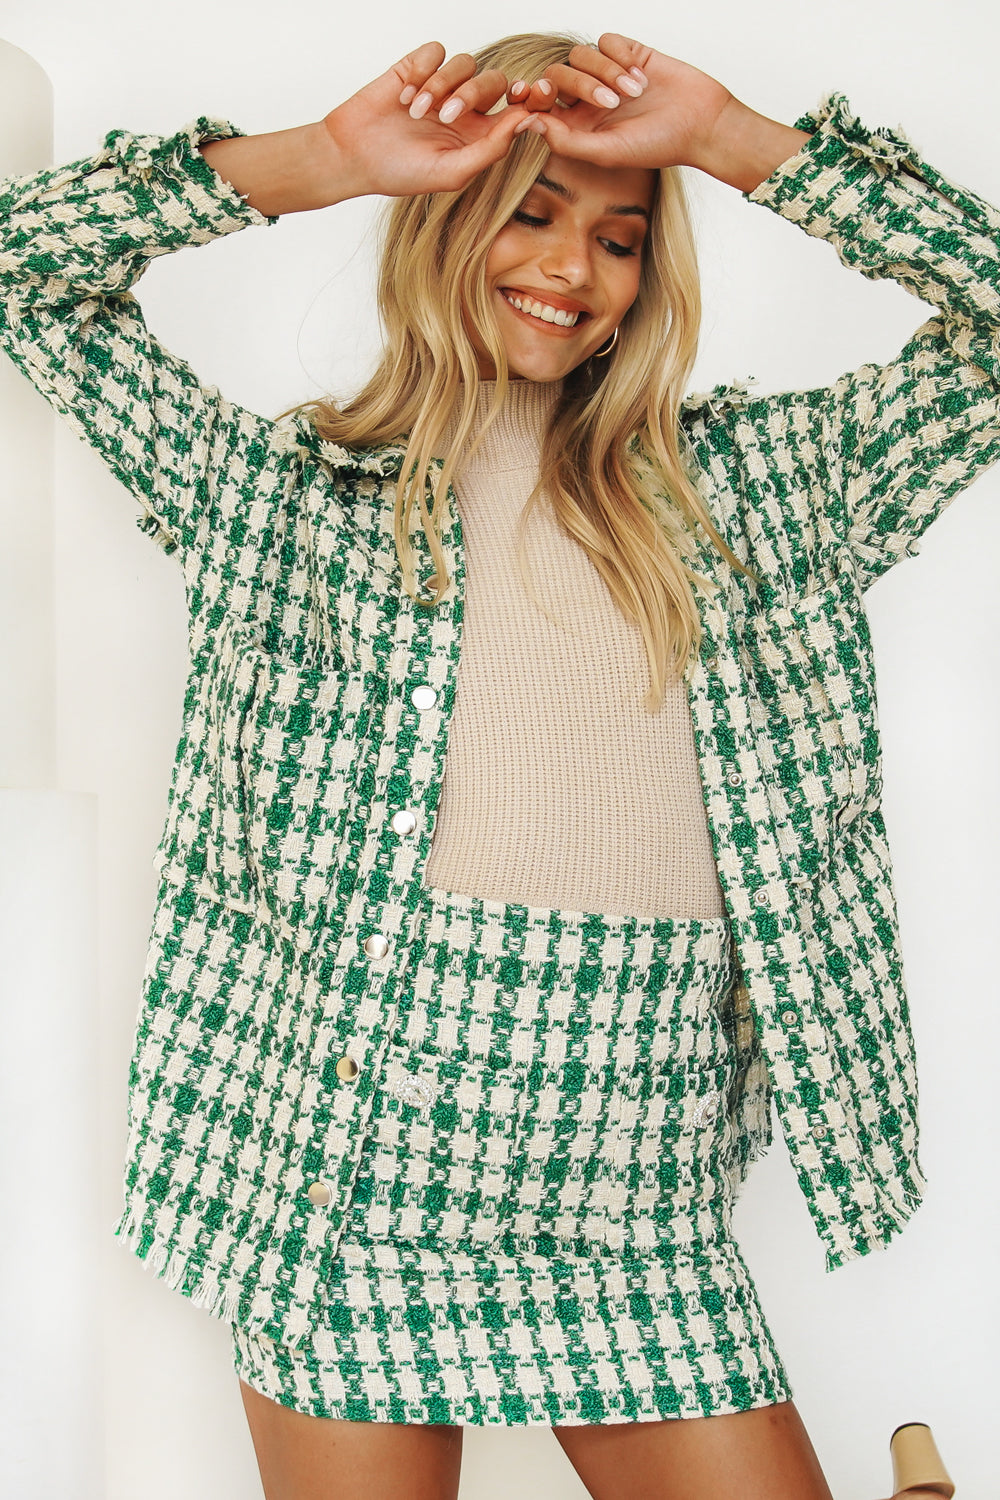 French Press Check Jacket // Green